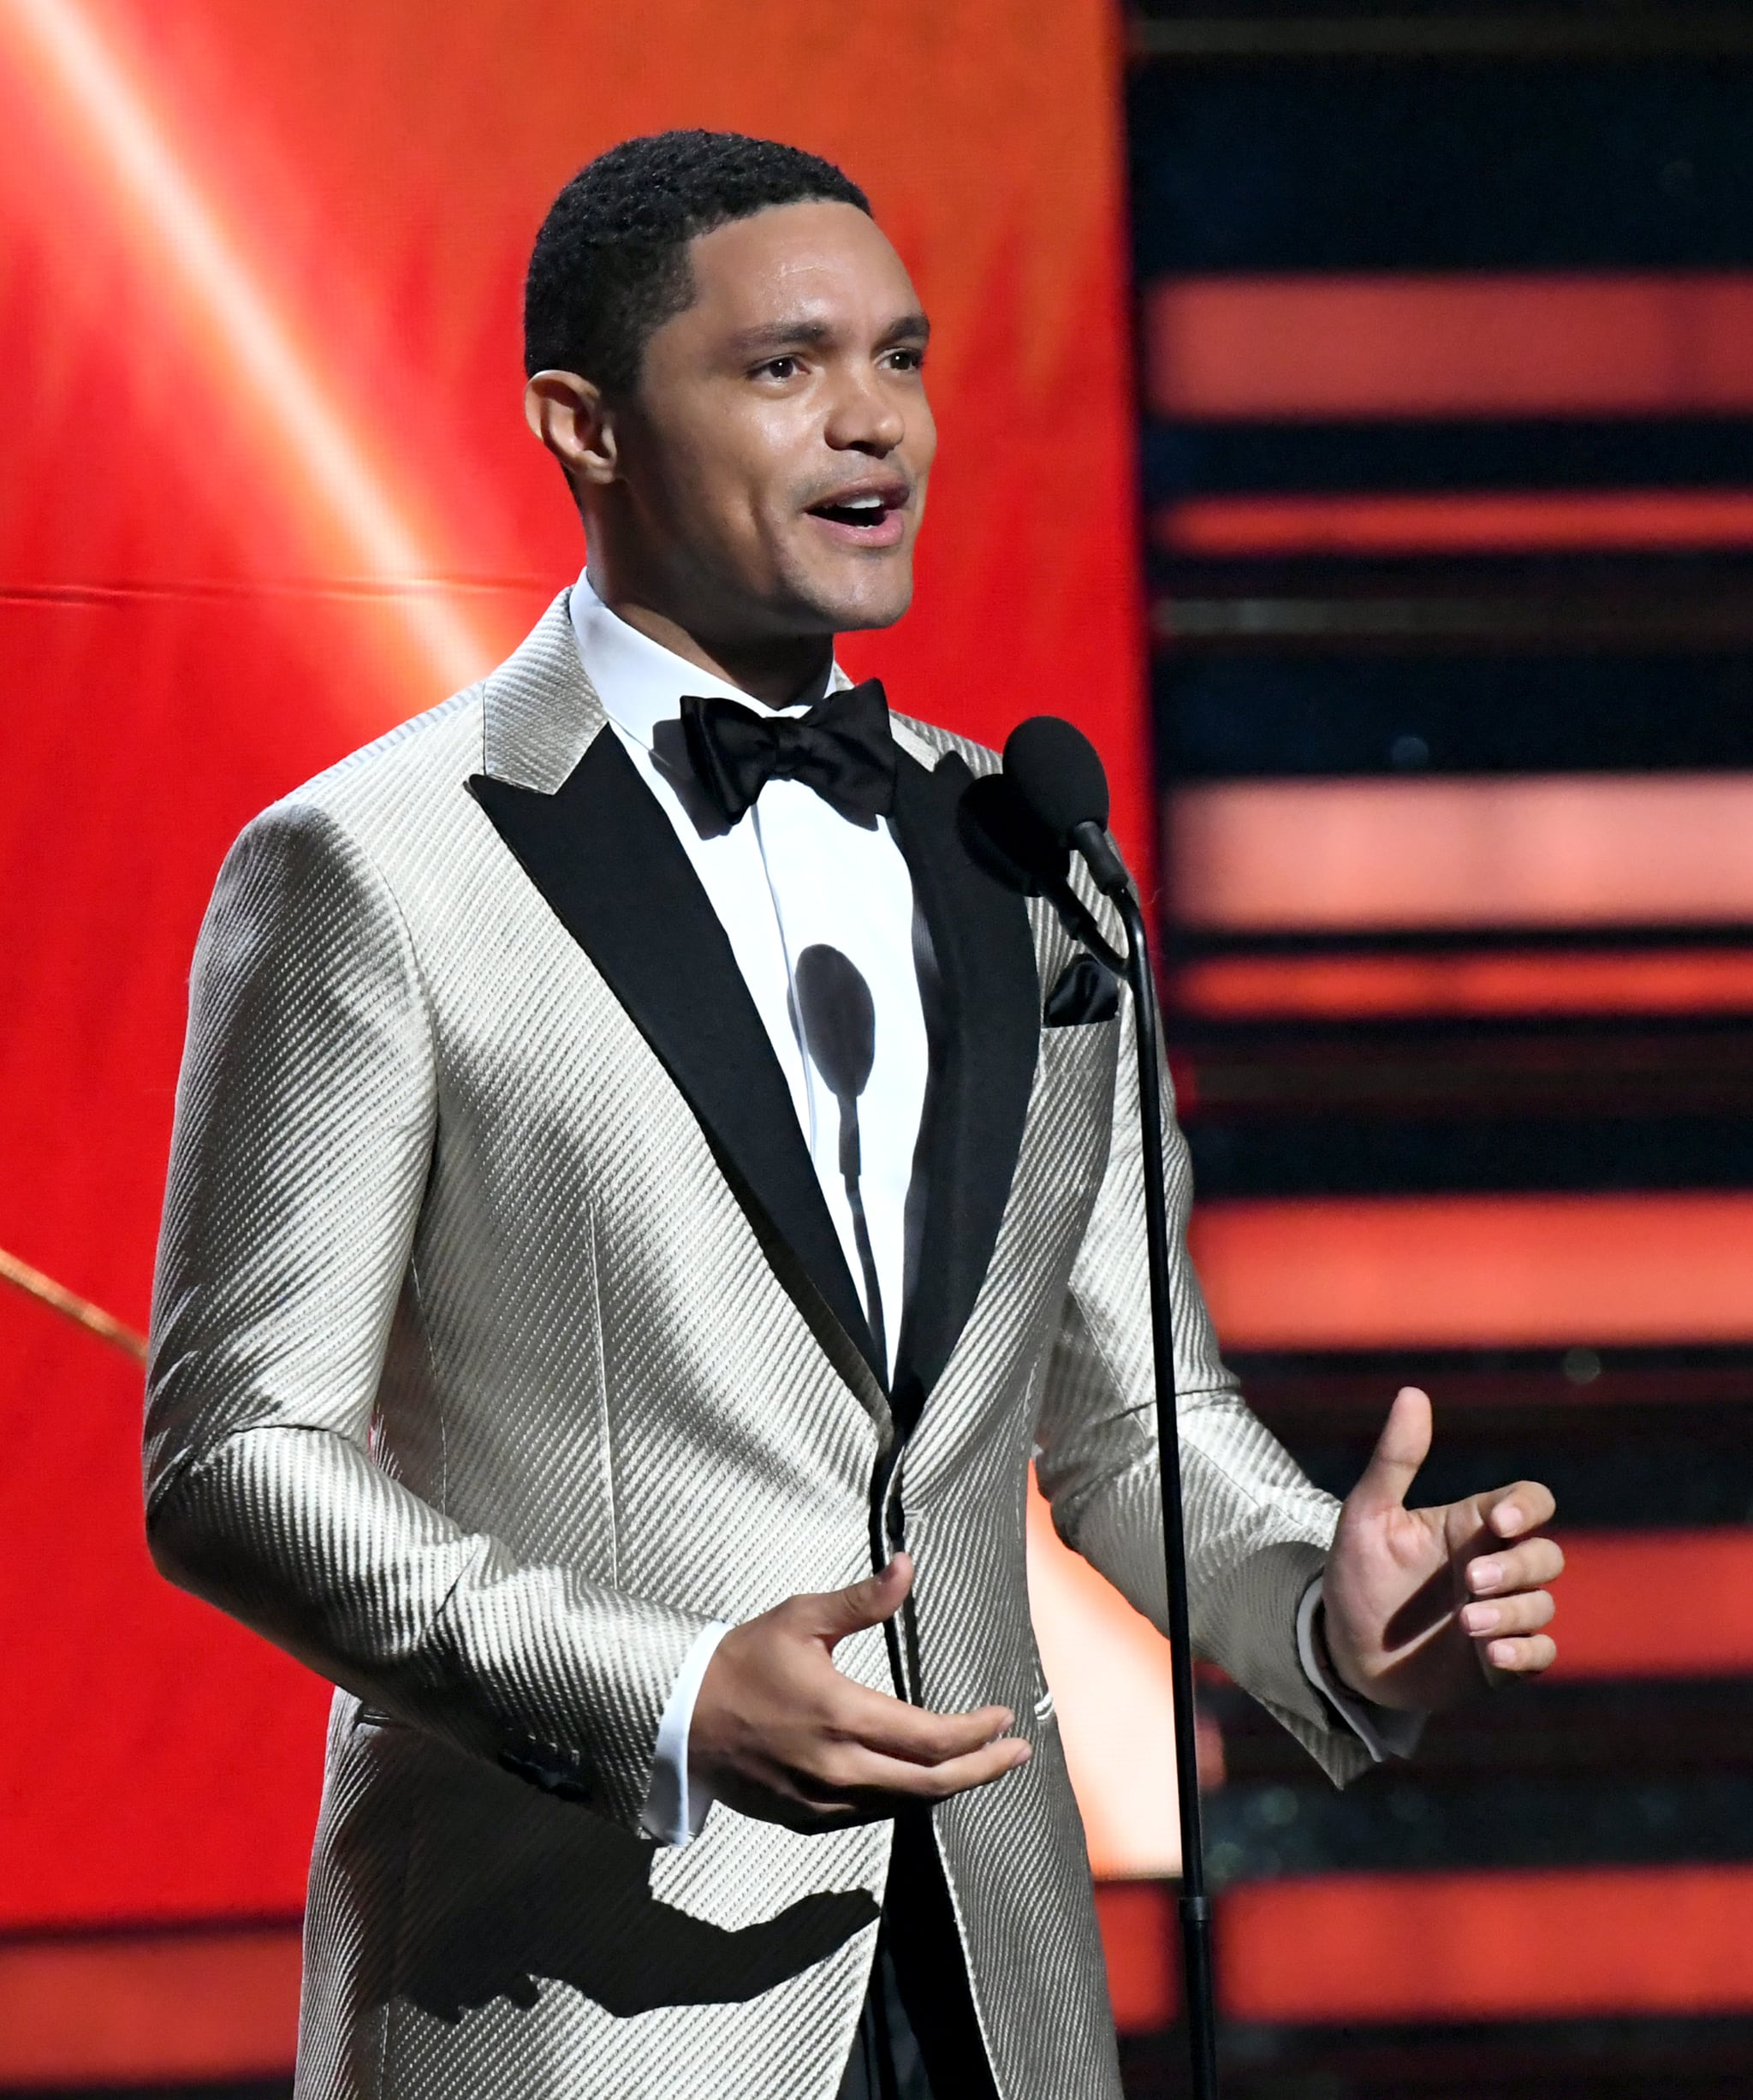 LOS ANGELES, CALIFORNIA - JANUARY 26: Trevor Noah speaks onstage during the 62nd Annual GRAMMY Awards at Staples Center on January 26, 2020 in Los Angeles, California. (Photo by Jeff Kravitz/FilmMagic)